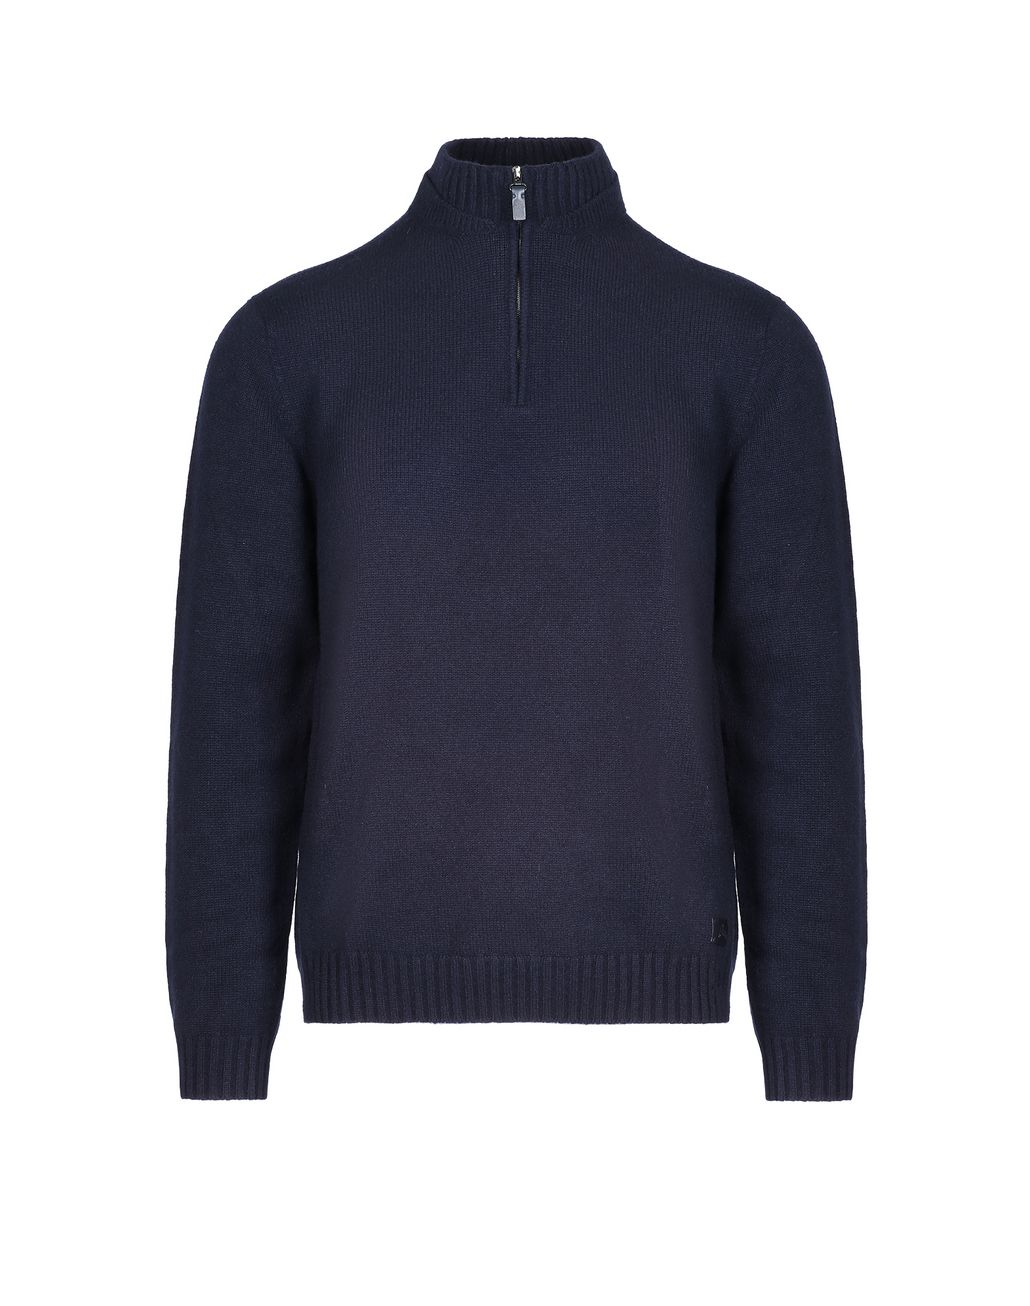 BRIONI Navy Blue Mock Neck Zipped Sweater Knitwear [*** pickupInStoreShippingNotGuaranteed_info ***] f